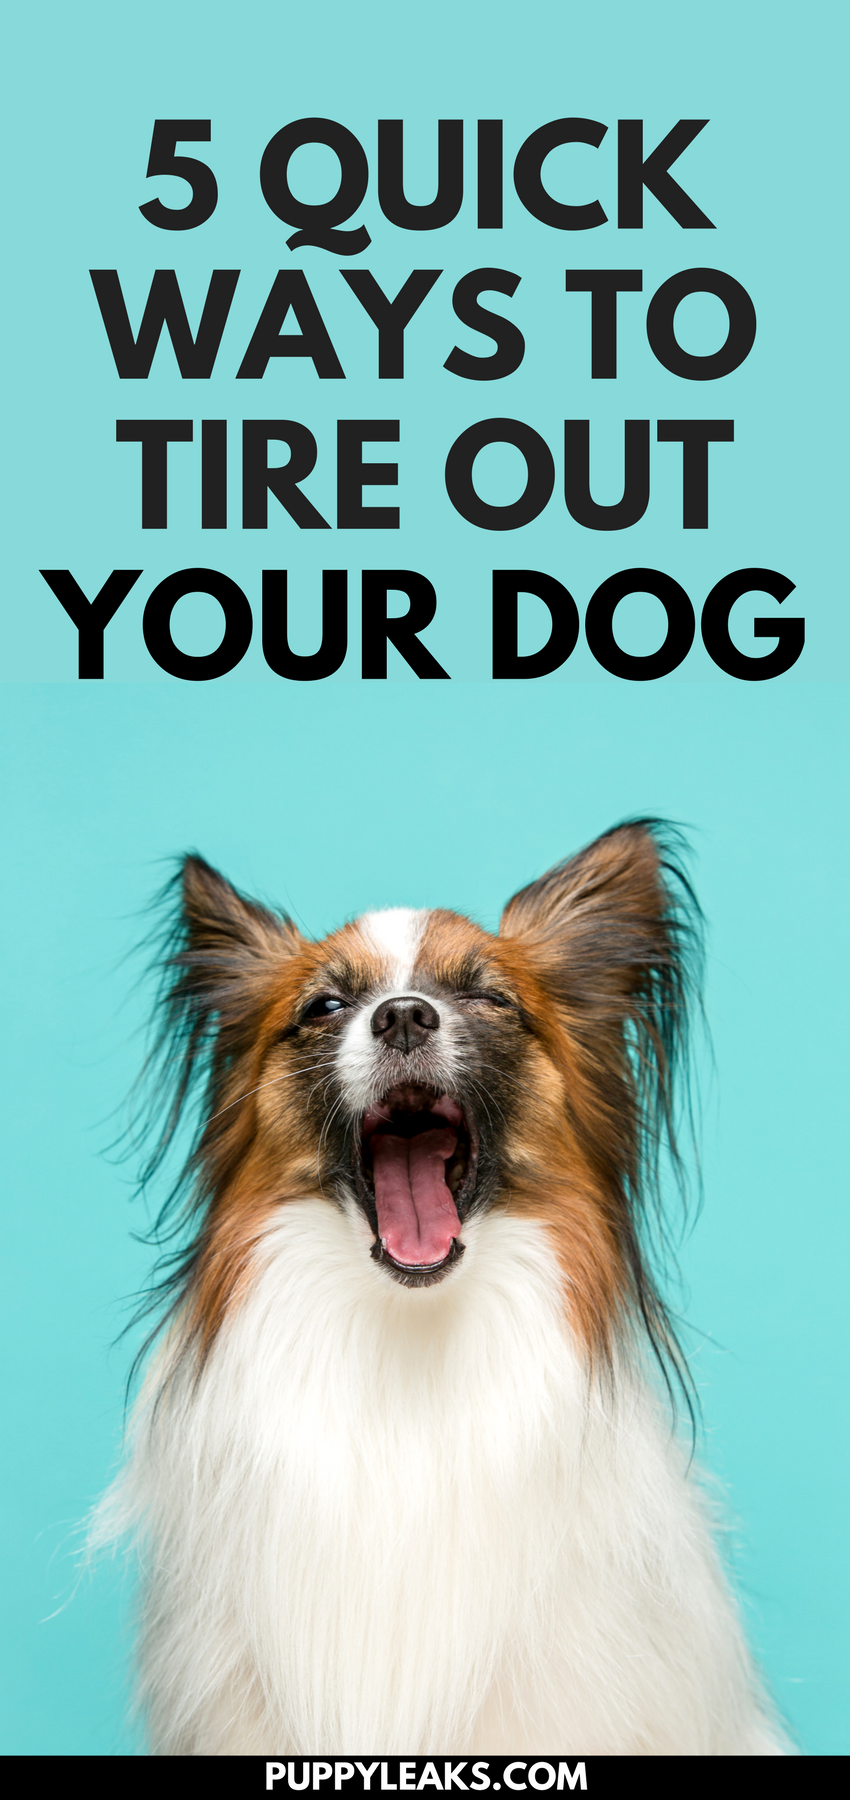 5 quick ways to tire out your dog puppy leaks does your dog have a lot of energy looking for some easy ways to exercise solutioingenieria